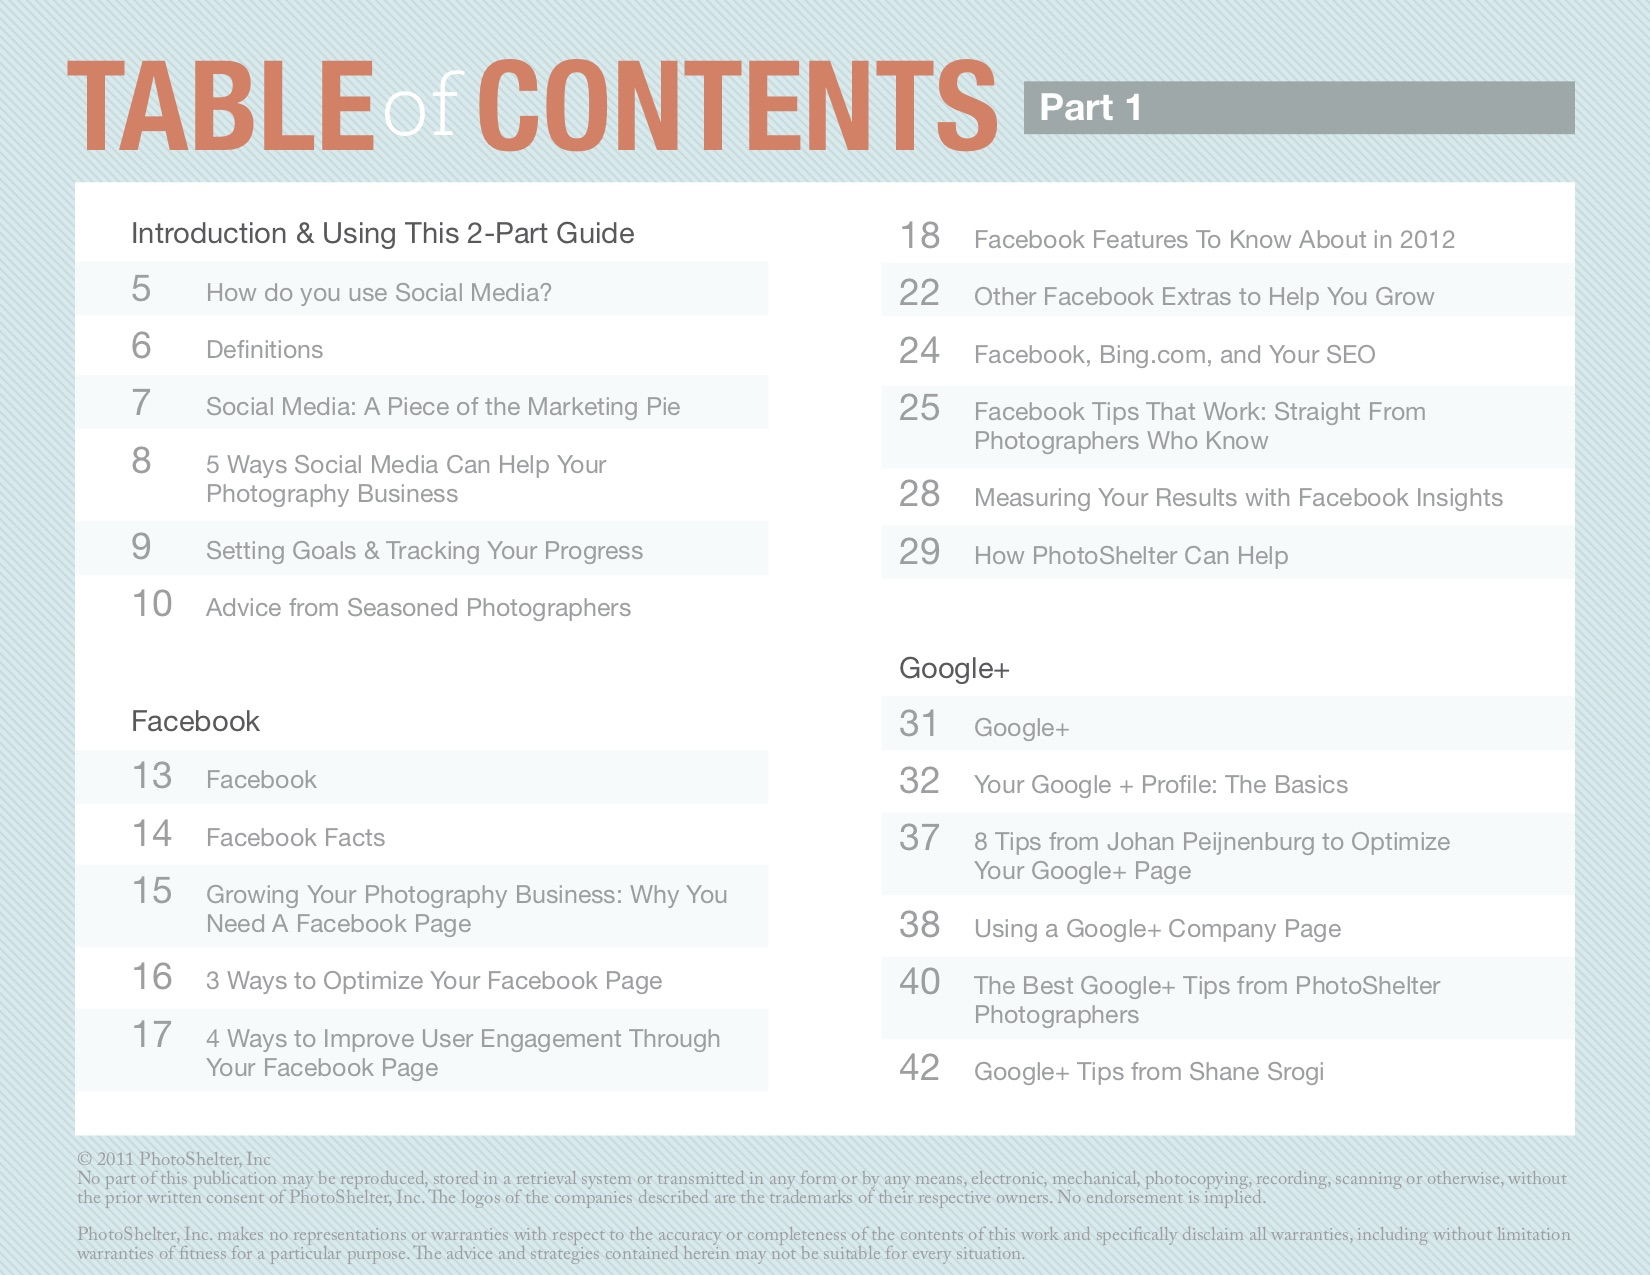 Table of Contents, broken down into sections: Introduction & Using This 2-Part Guide, Facebook and Google+.